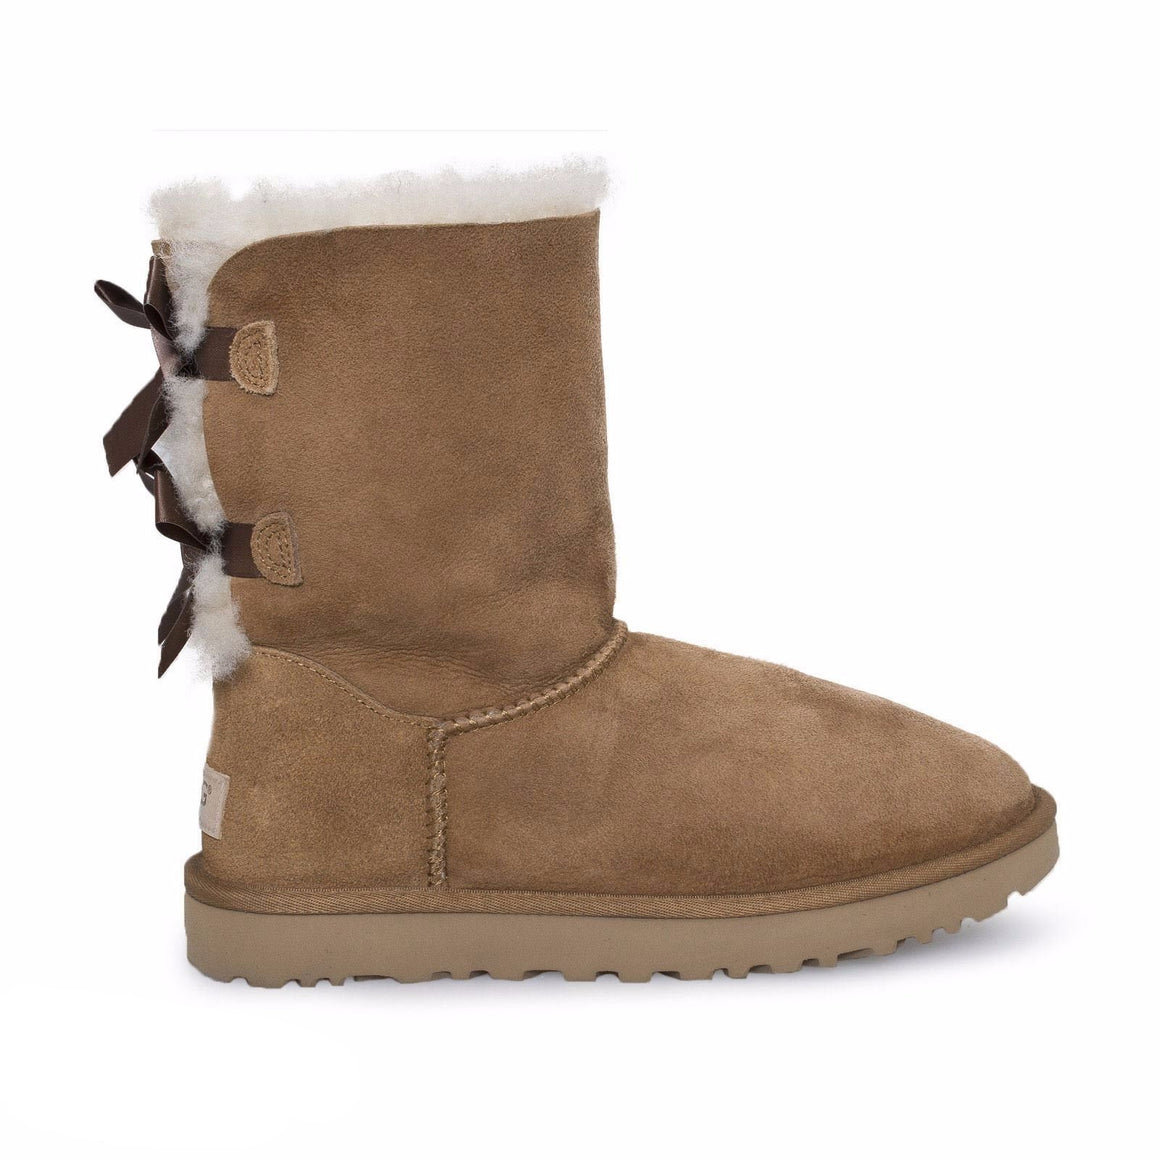 UGG Bailey Bow ii Chestnut Boots - Youth / Toddler